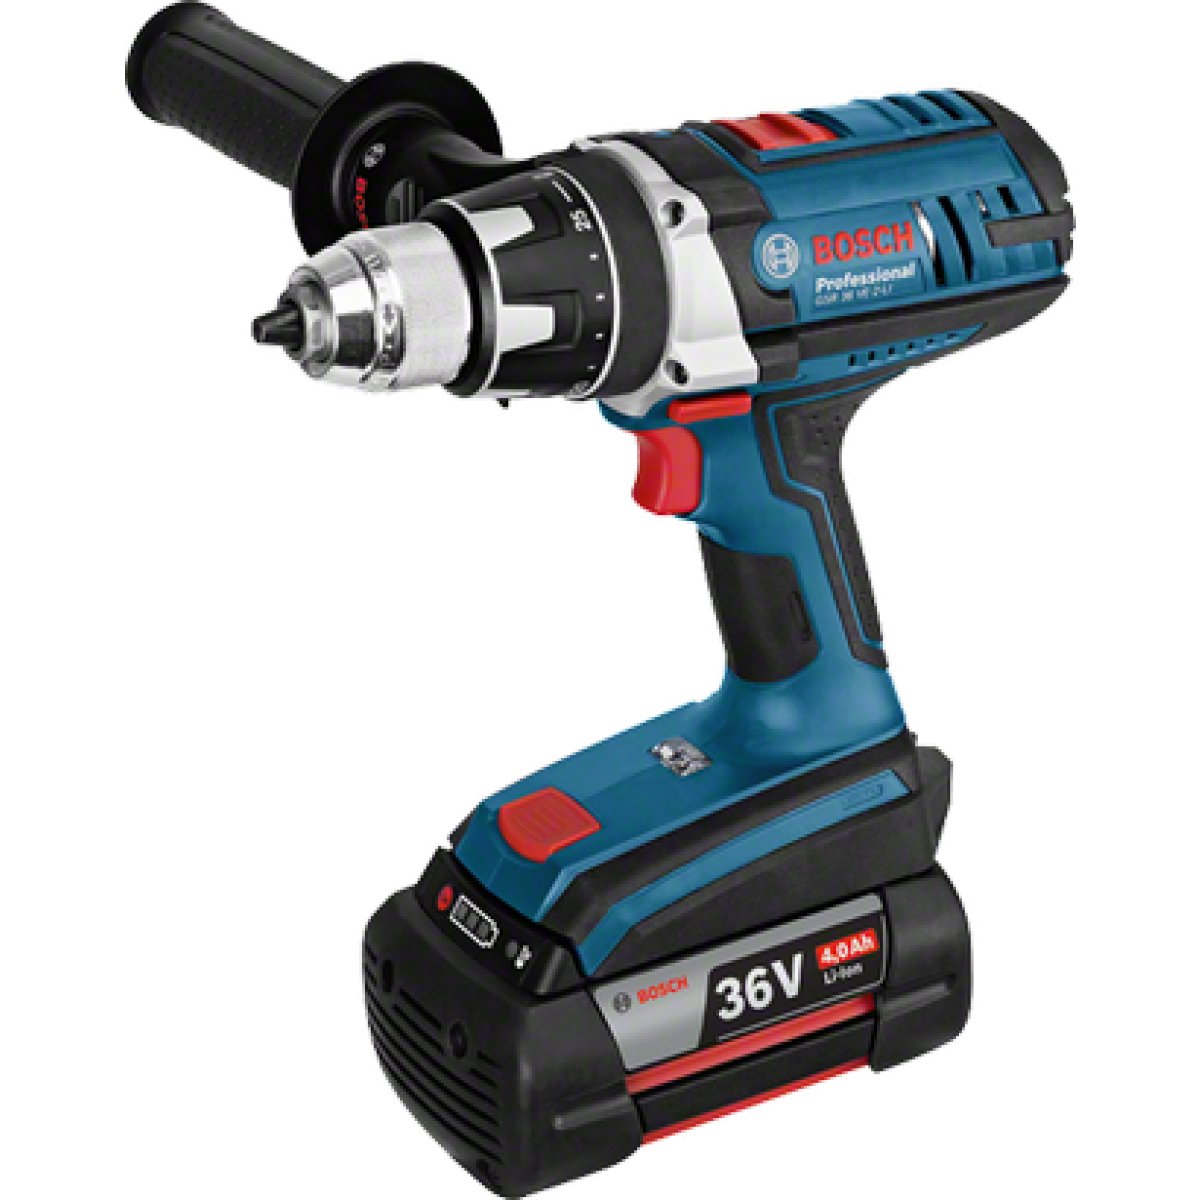 bosch cordless drill driver gsr 36 ve 2 li. Black Bedroom Furniture Sets. Home Design Ideas